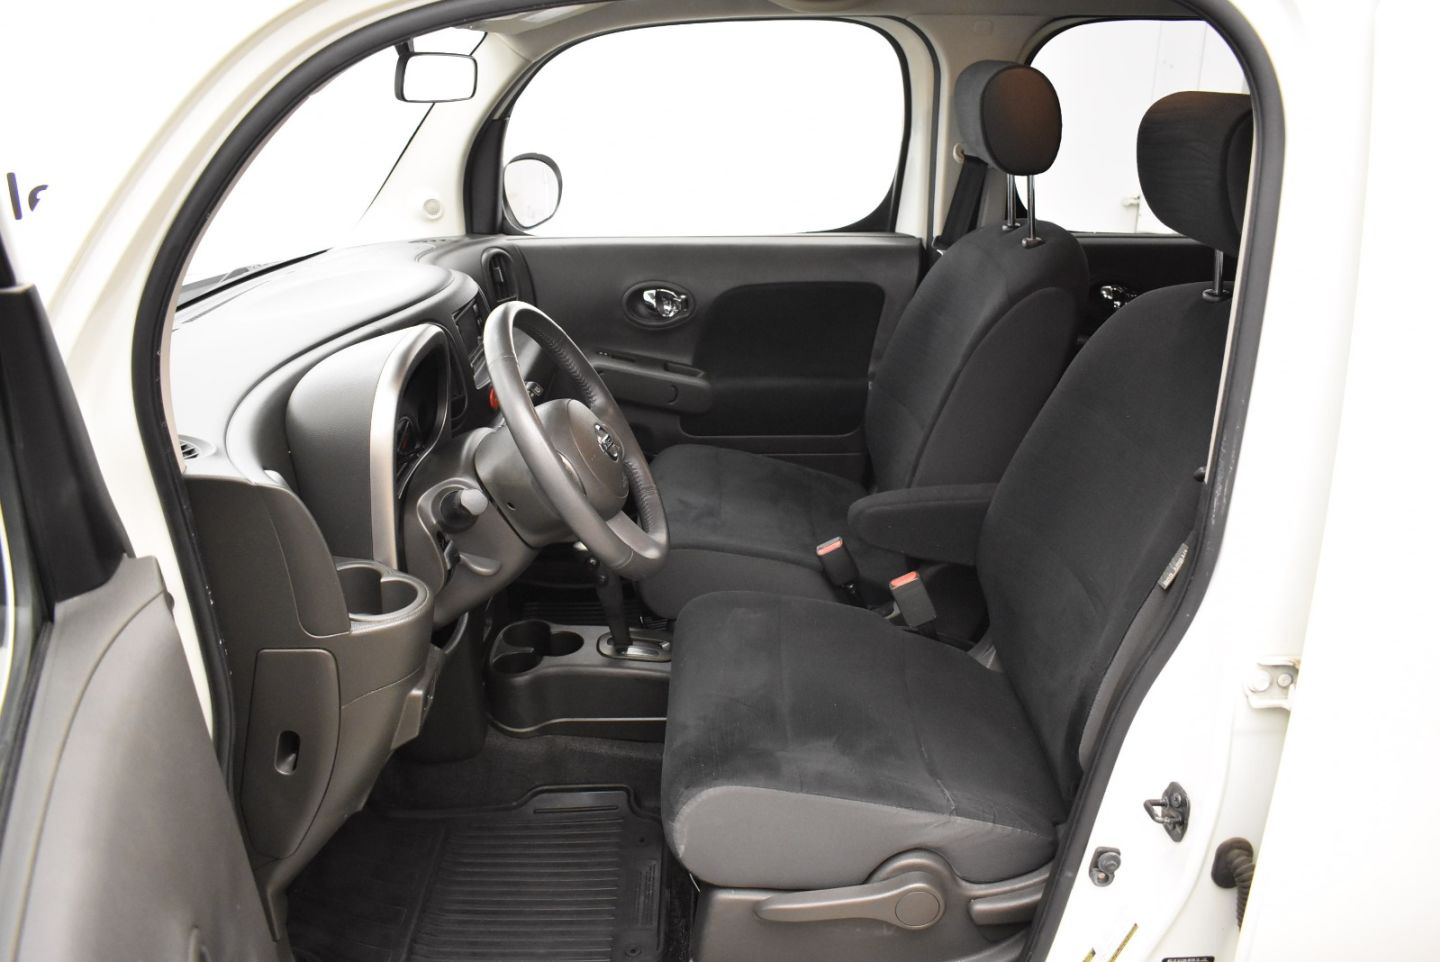 2010 Nissan cube 1.8 SL for sale in ,